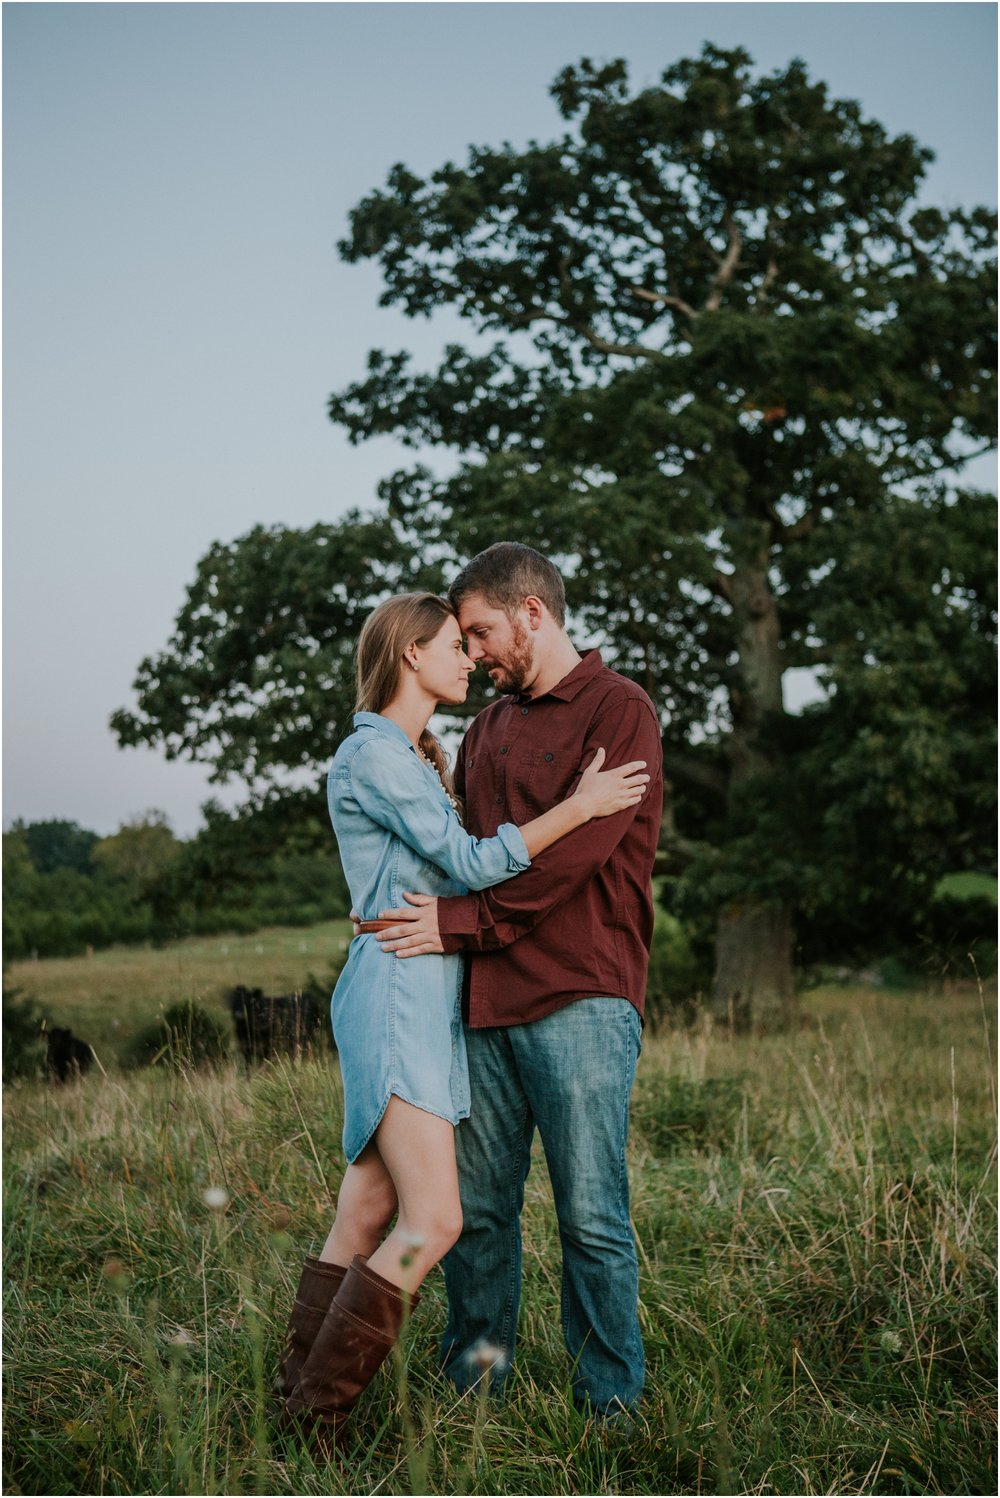 katy-sergent-photography-johnson-city-tn-wedding-elopement-photographer-northeast-asheville-north-carolina-adventurous-couples-intimate-mountain-staunton-virginia-engagement-session-rustic-blue-ridge_0016.jpg